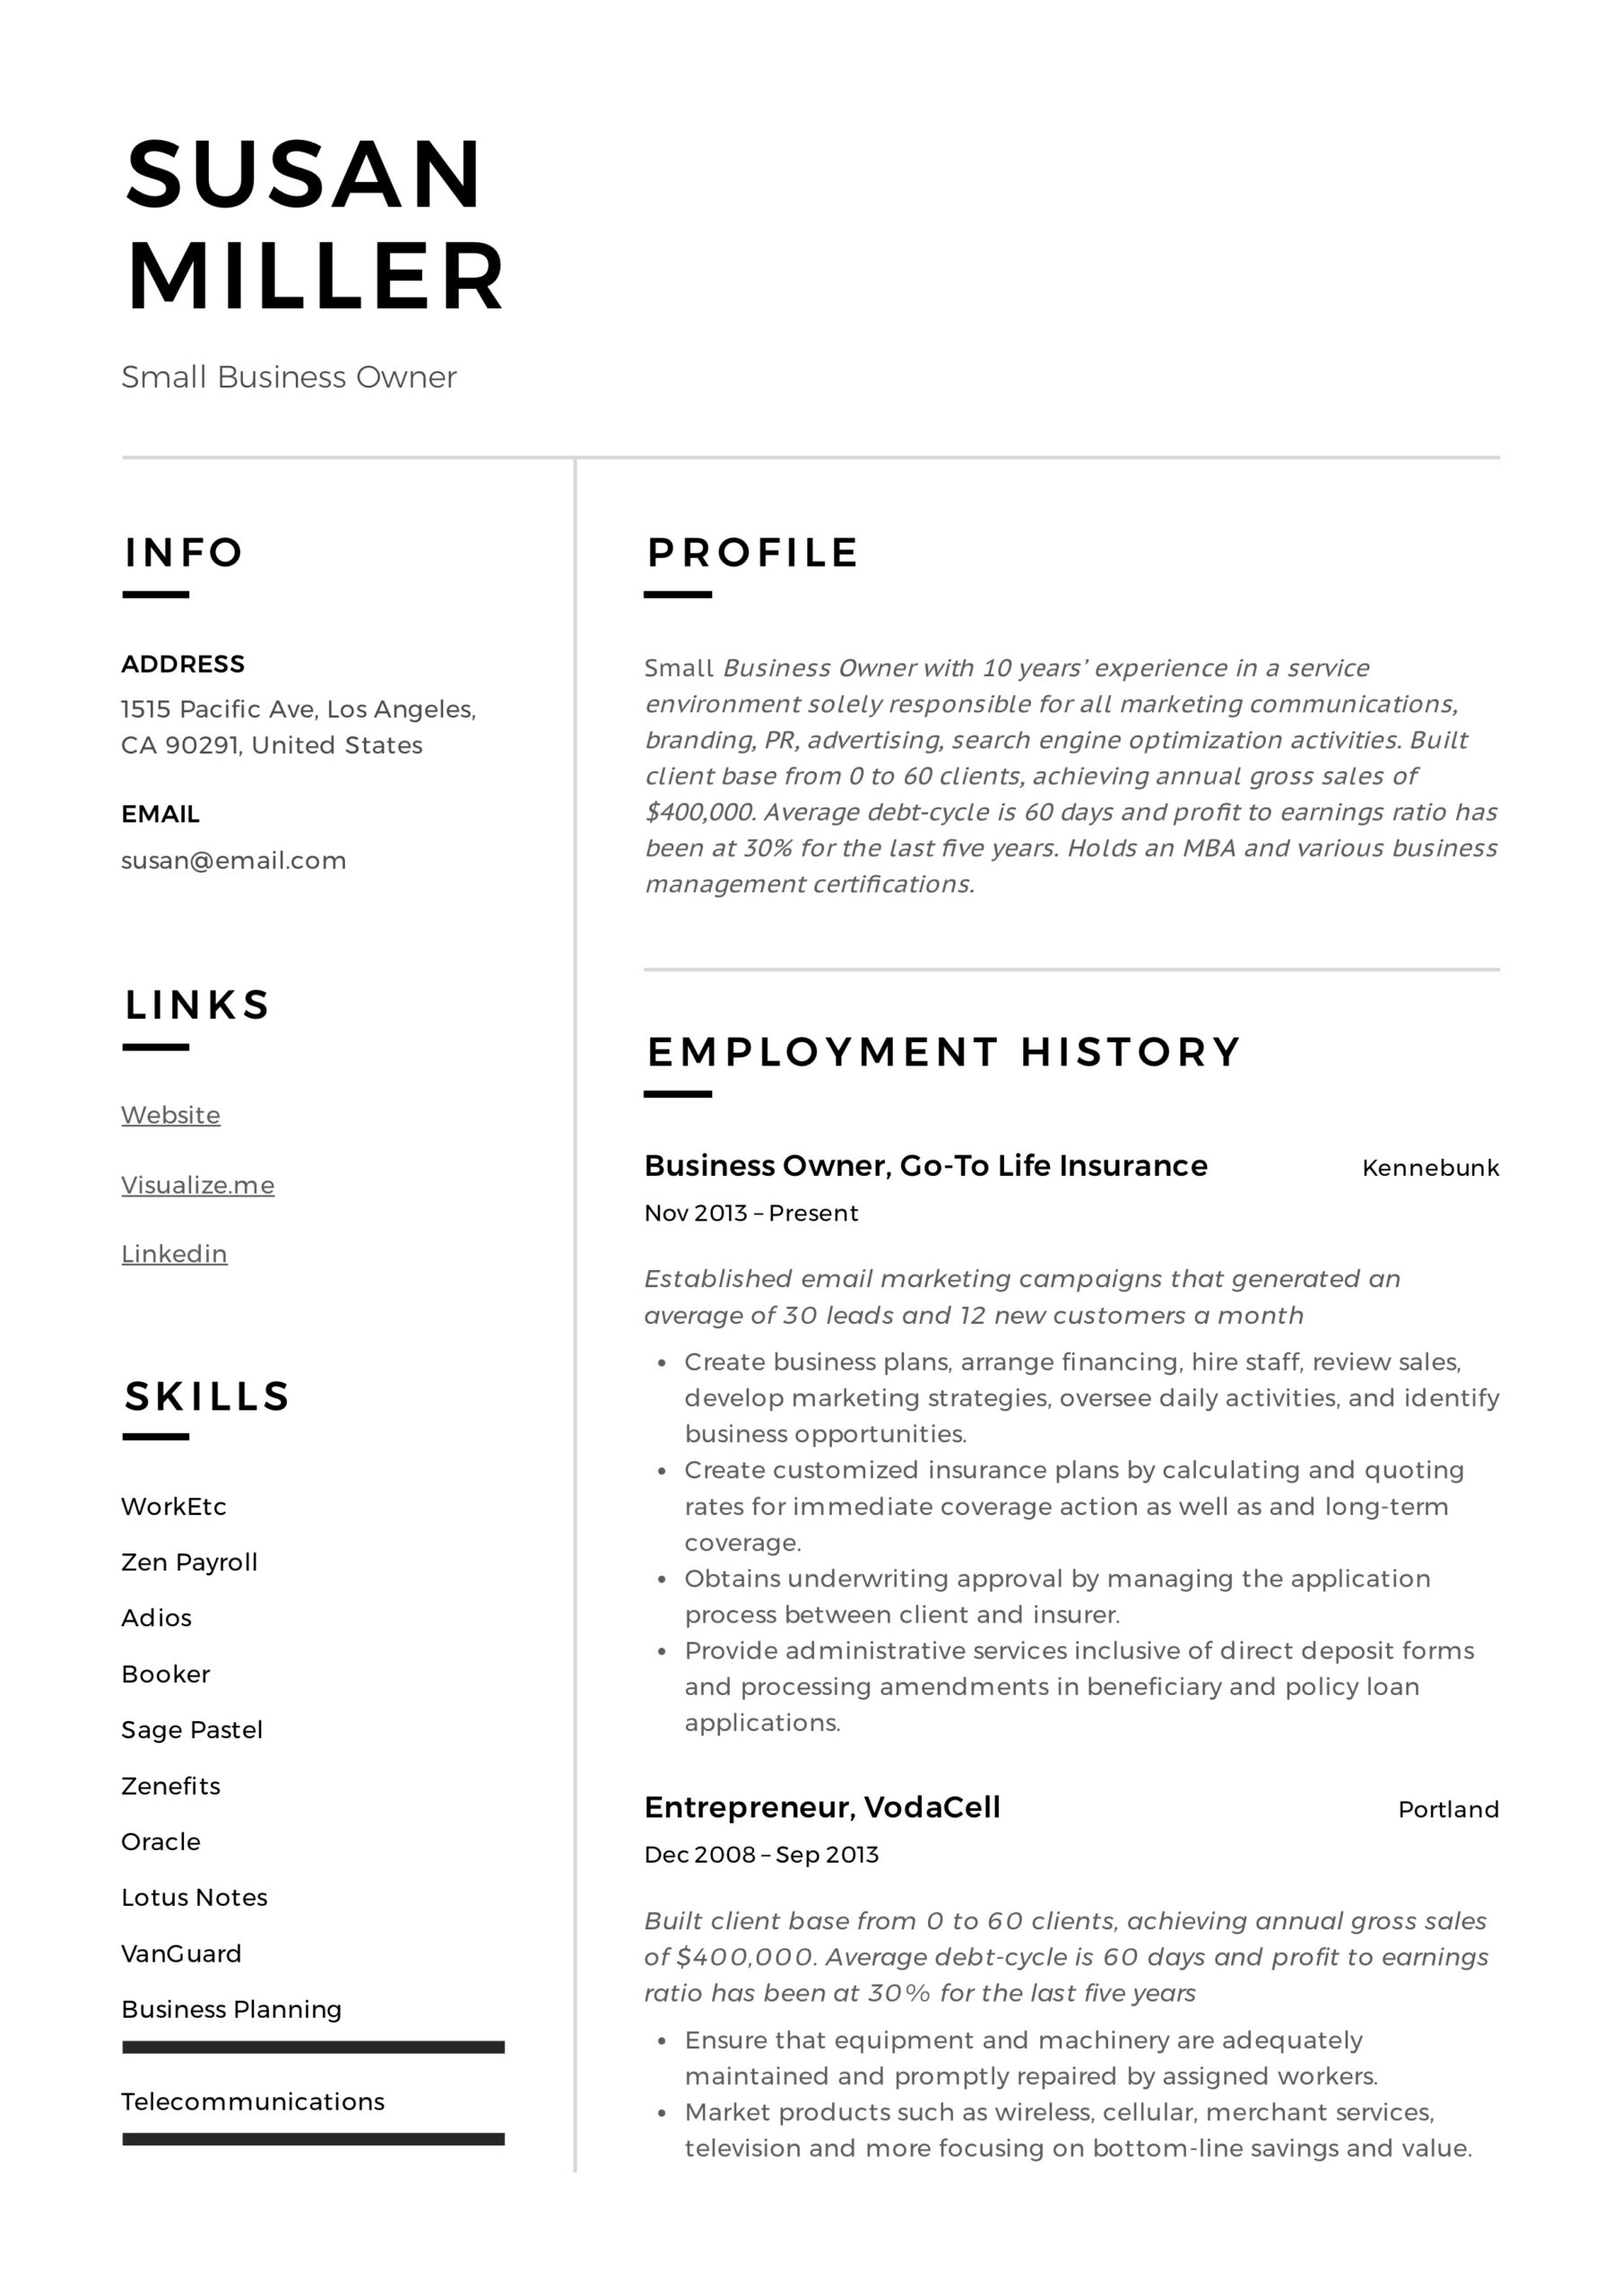 small business owner resume guide examples pdf entrepreneur example rotational program Resume Entrepreneur Resume Examples